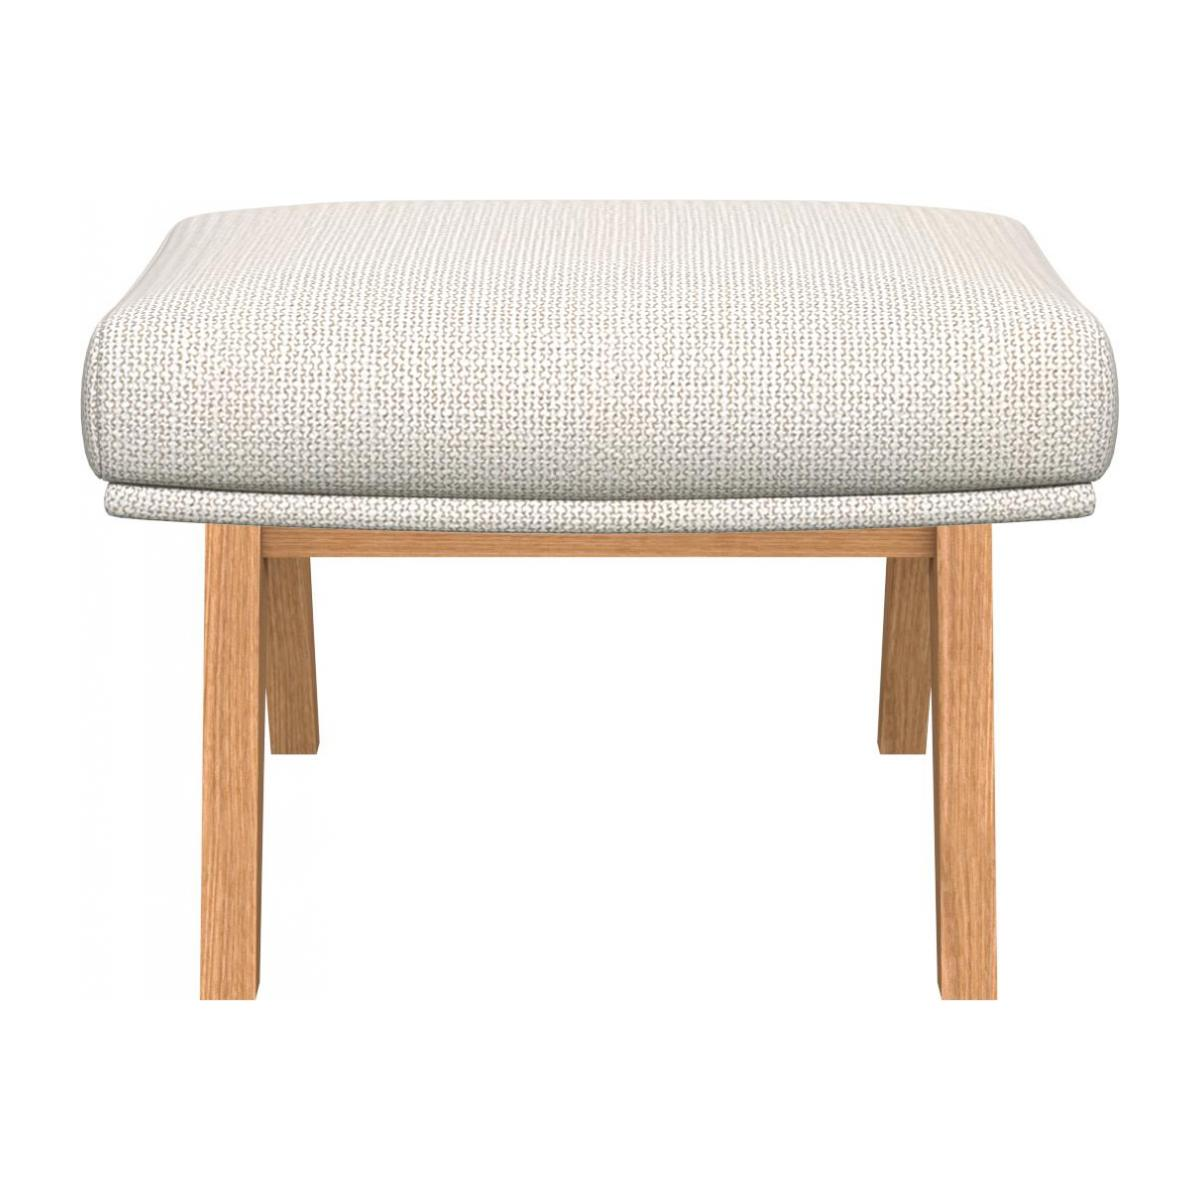 Footstool in Fasoli fabric, snow white with oak legs n°2